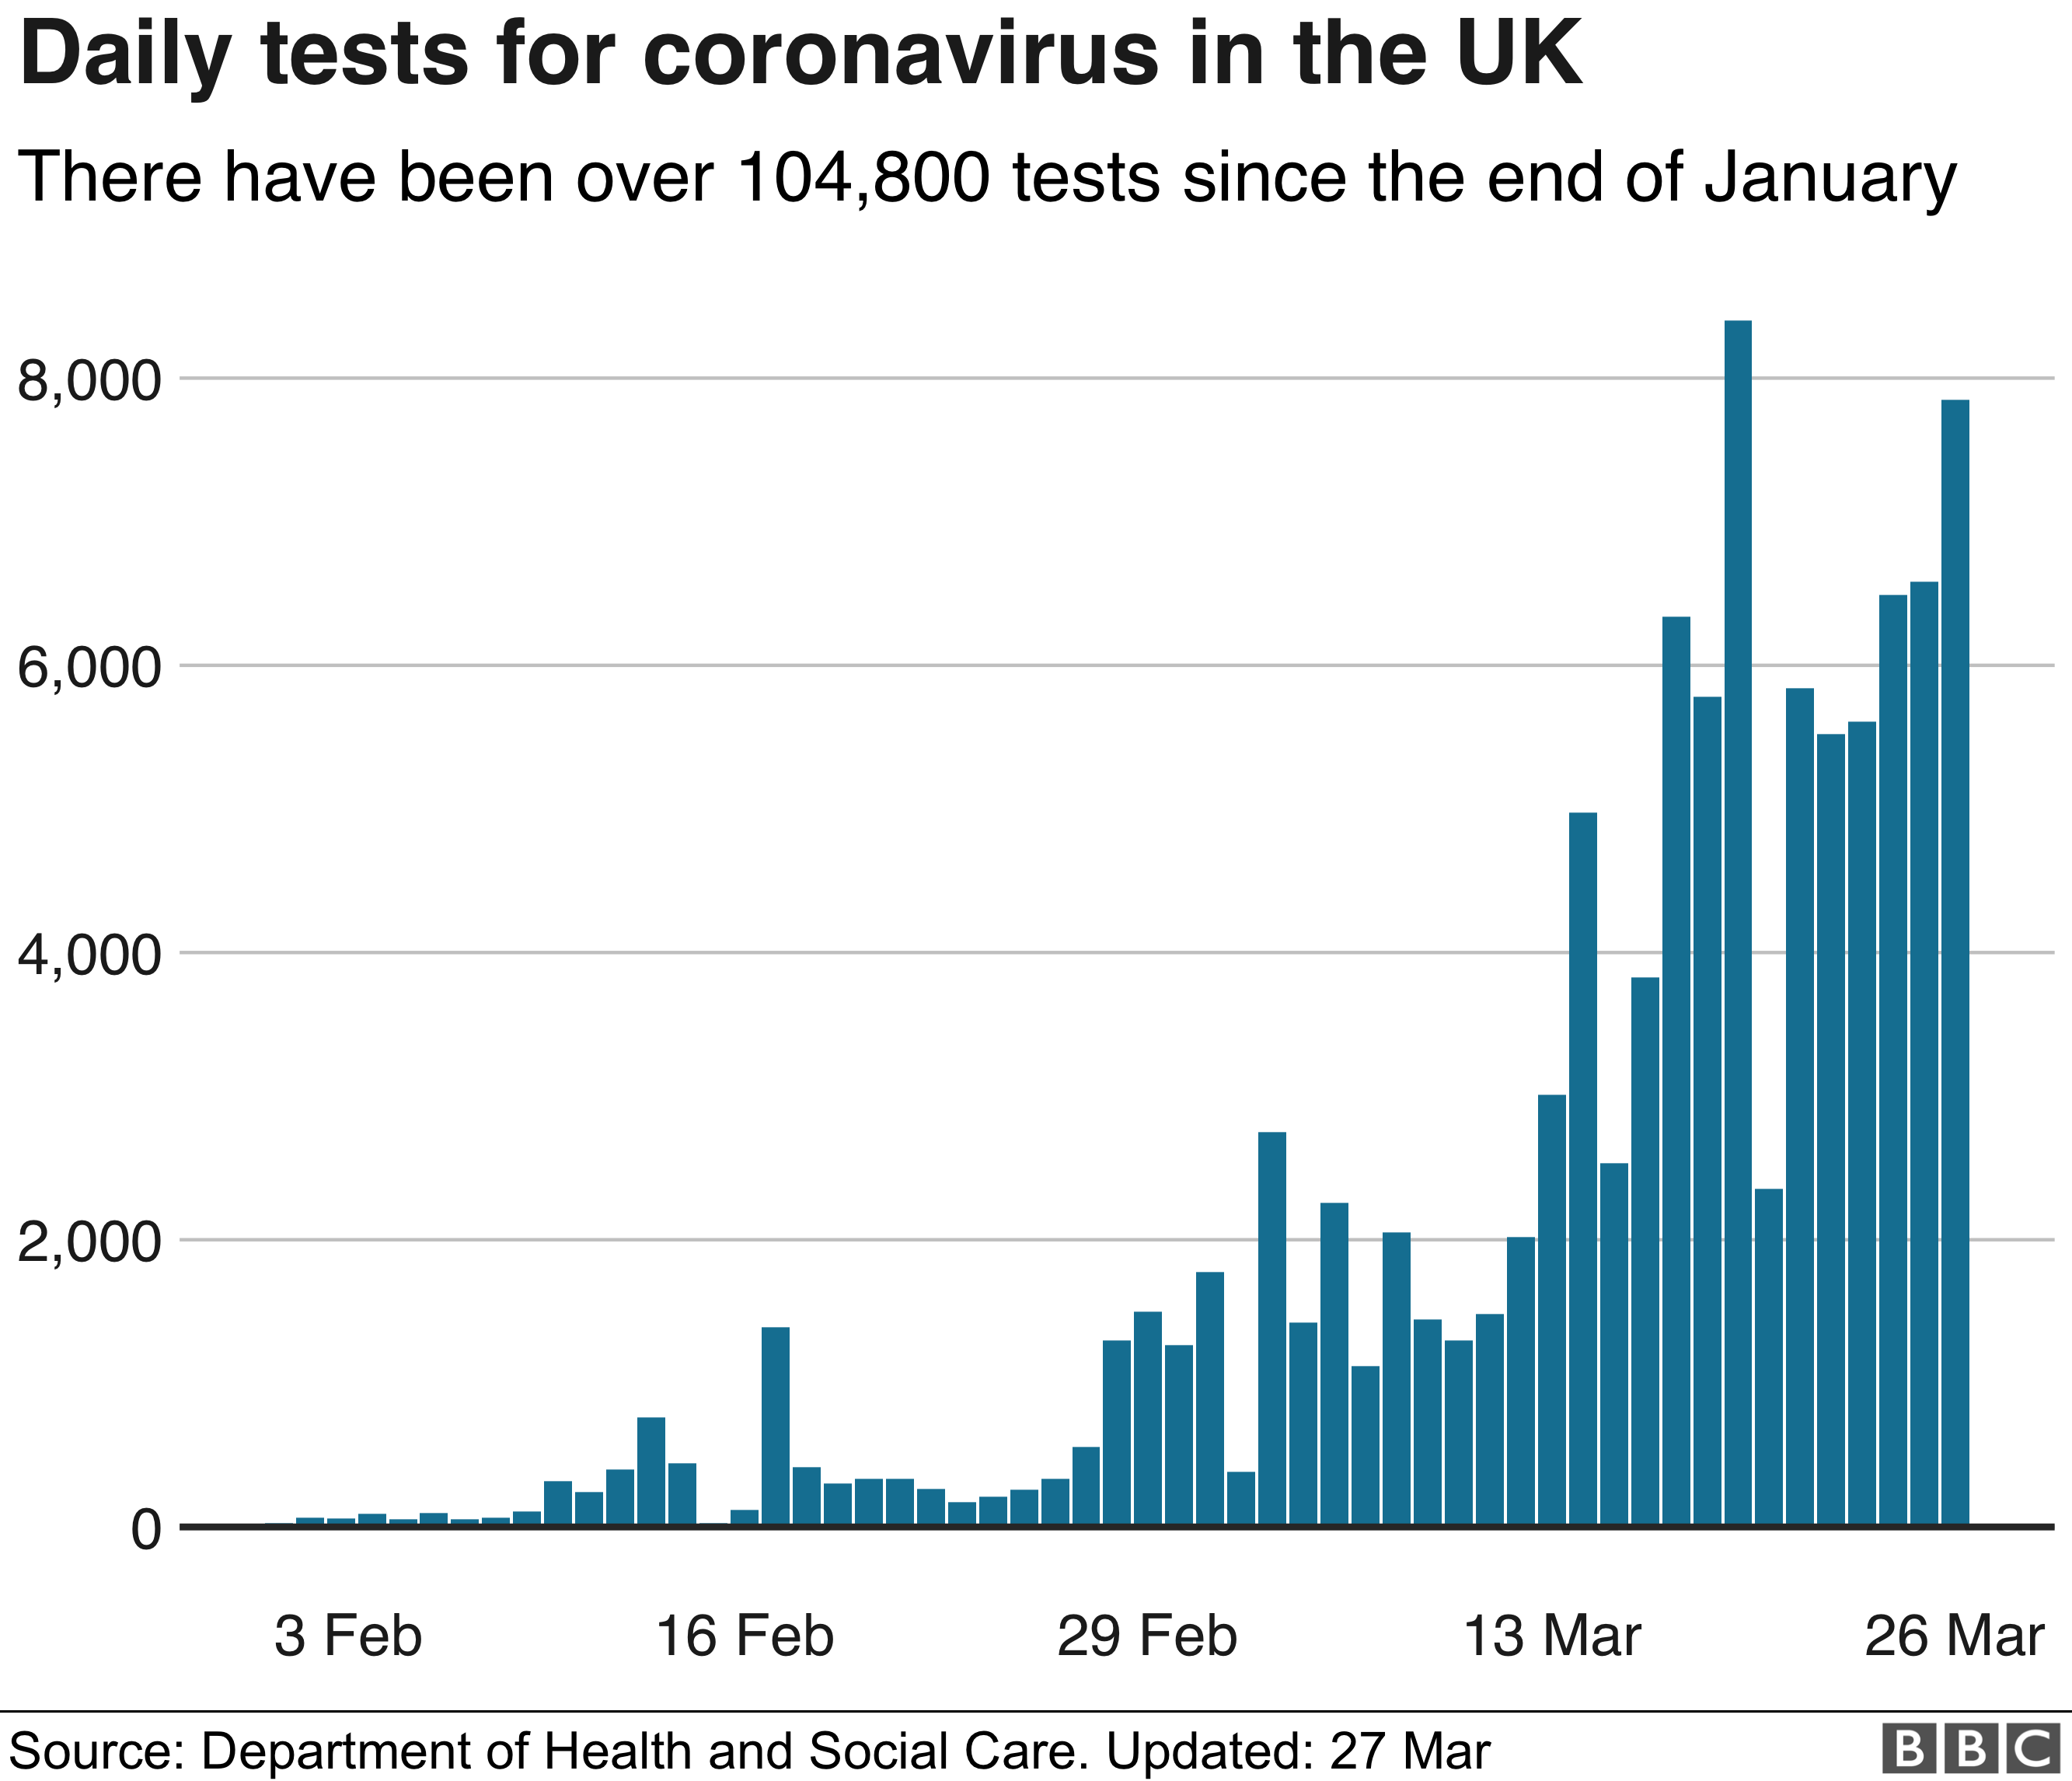 Daily tests for coronavirus in the UK - a bar chart